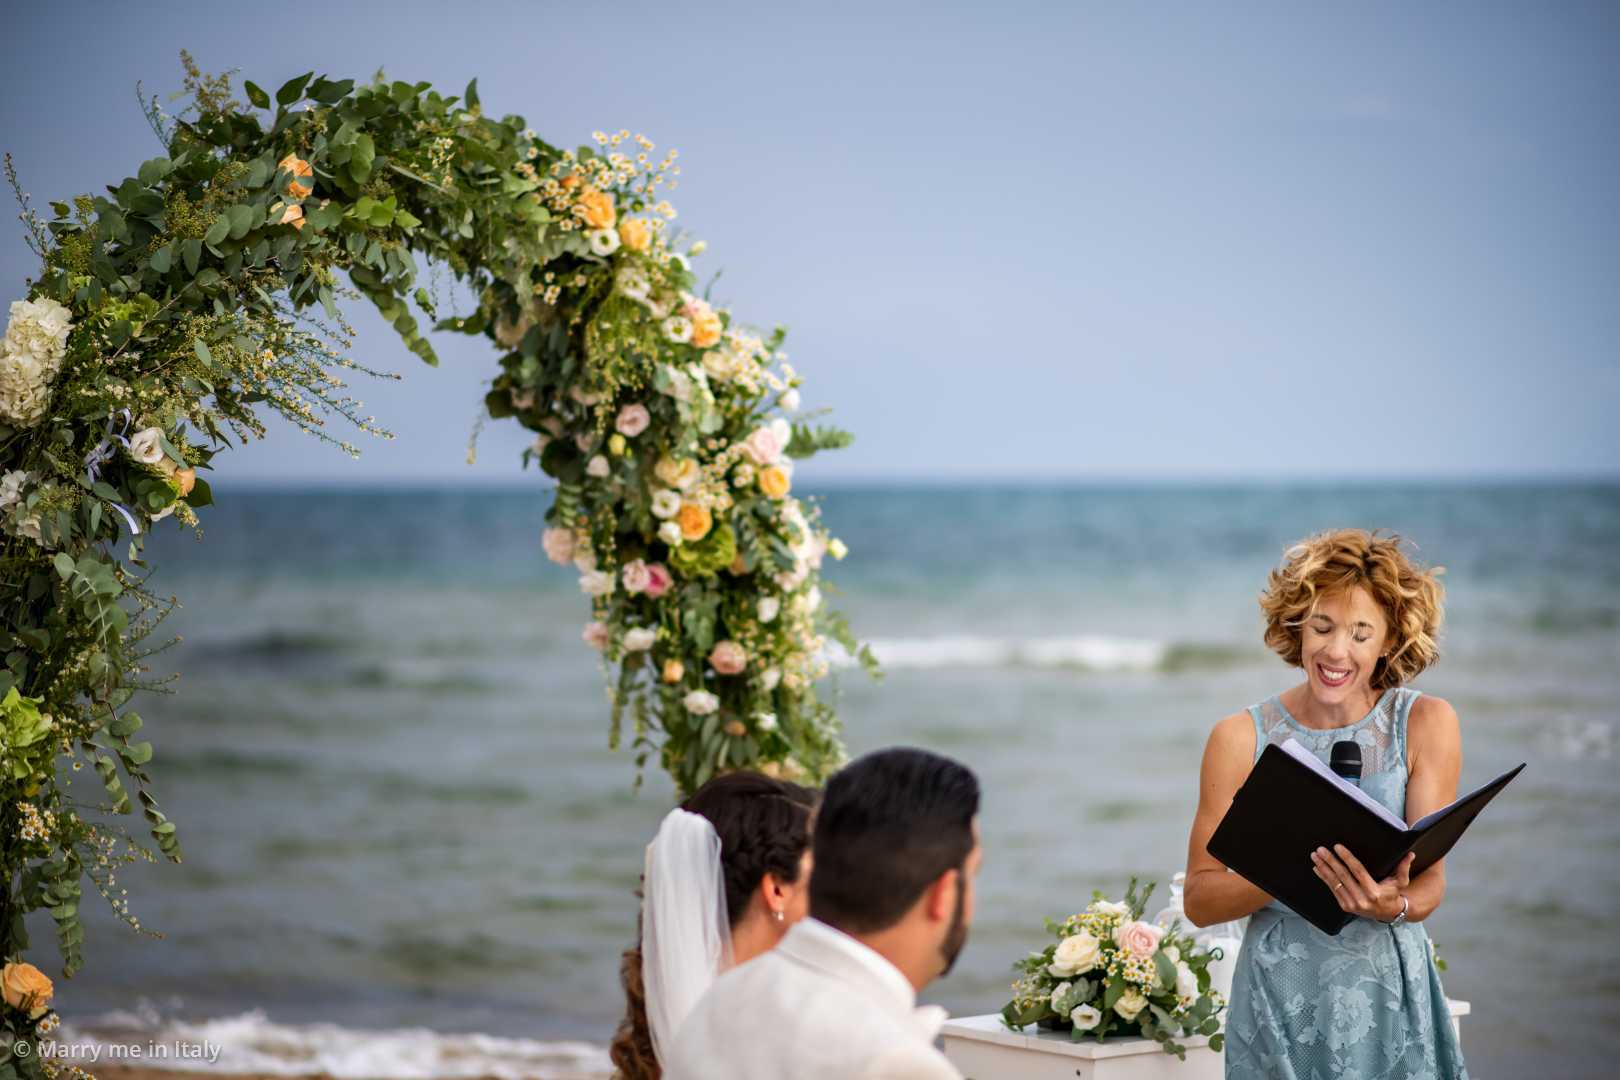 Intimate Elopement At The Beach Of Sicily By Kathi Chris